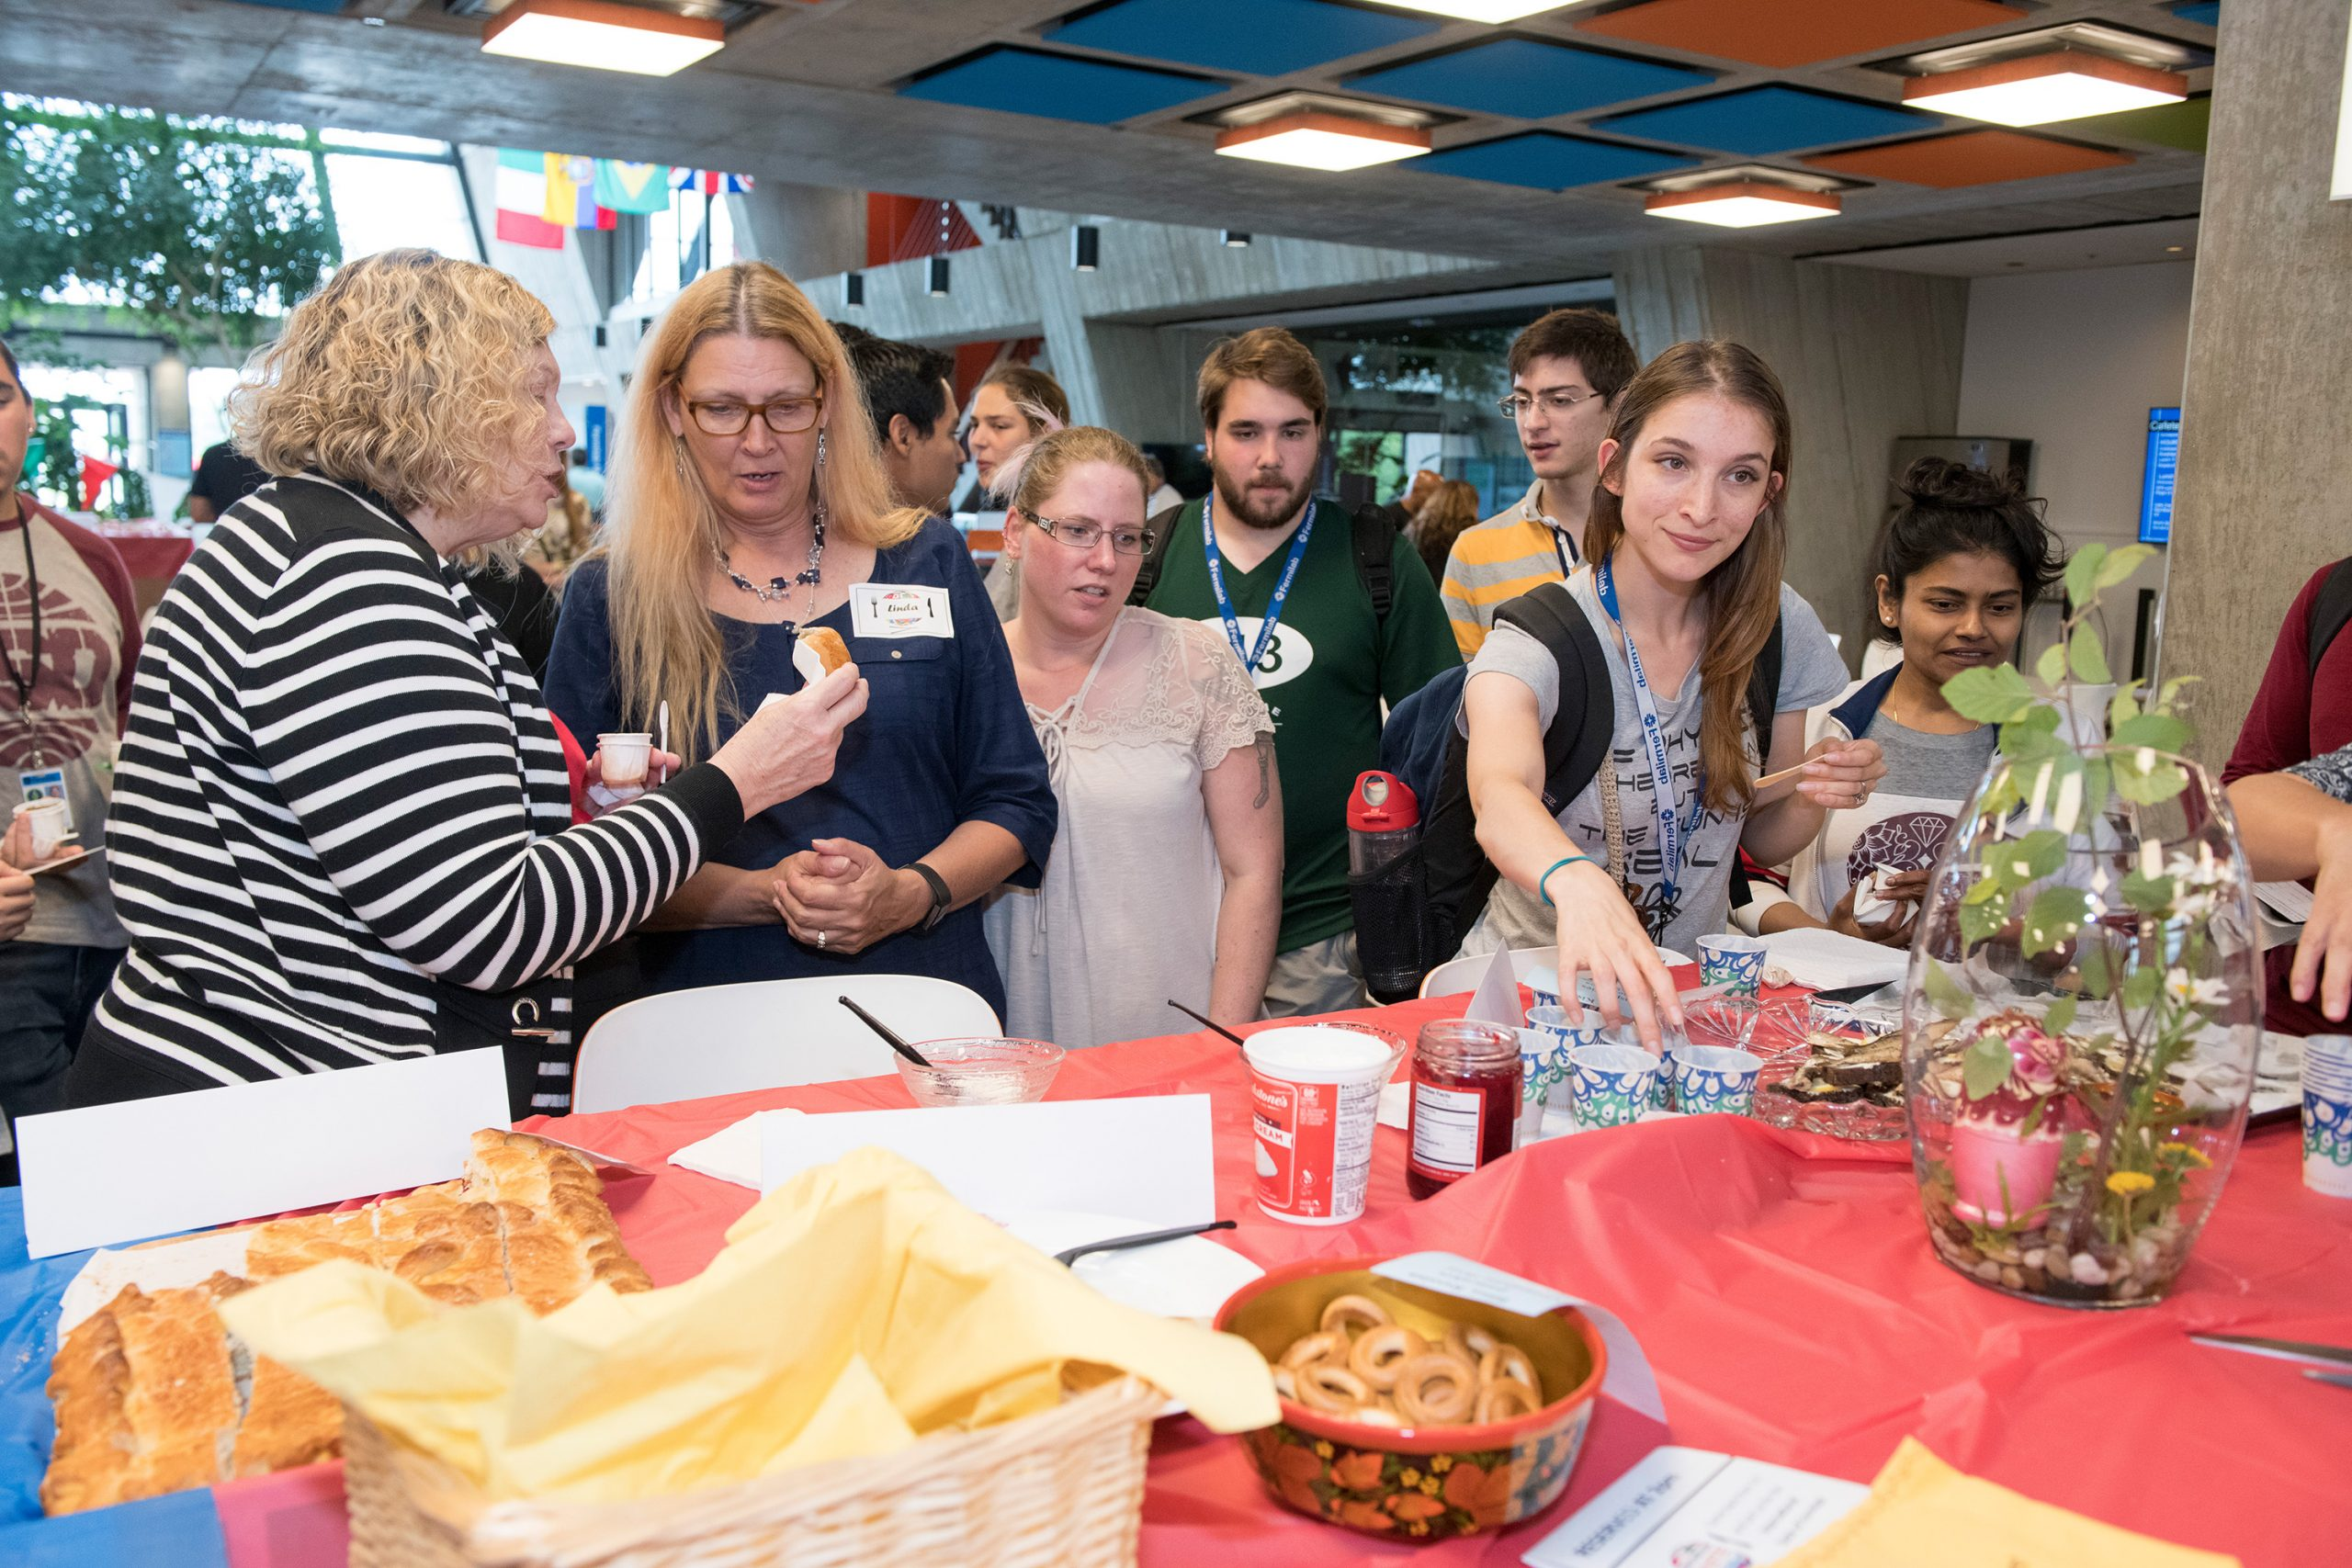 The Russia table had the widest variety of food samples. Photo: Reidar Hahn